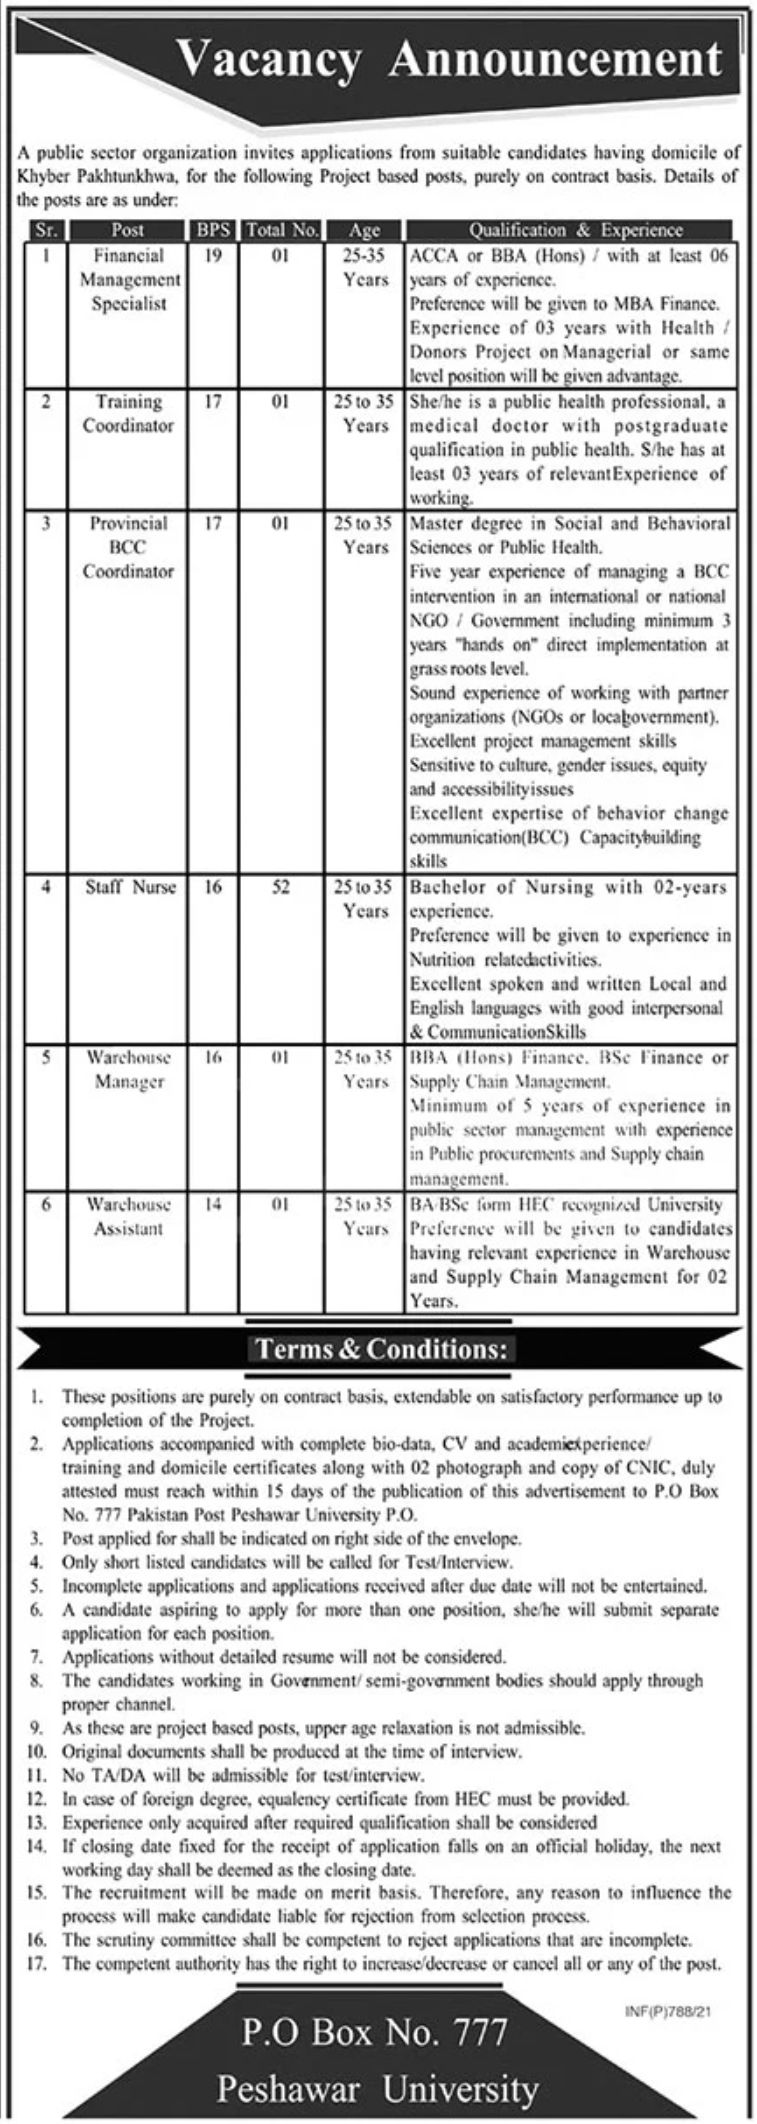 Public Sector Organization Jobs February 2021